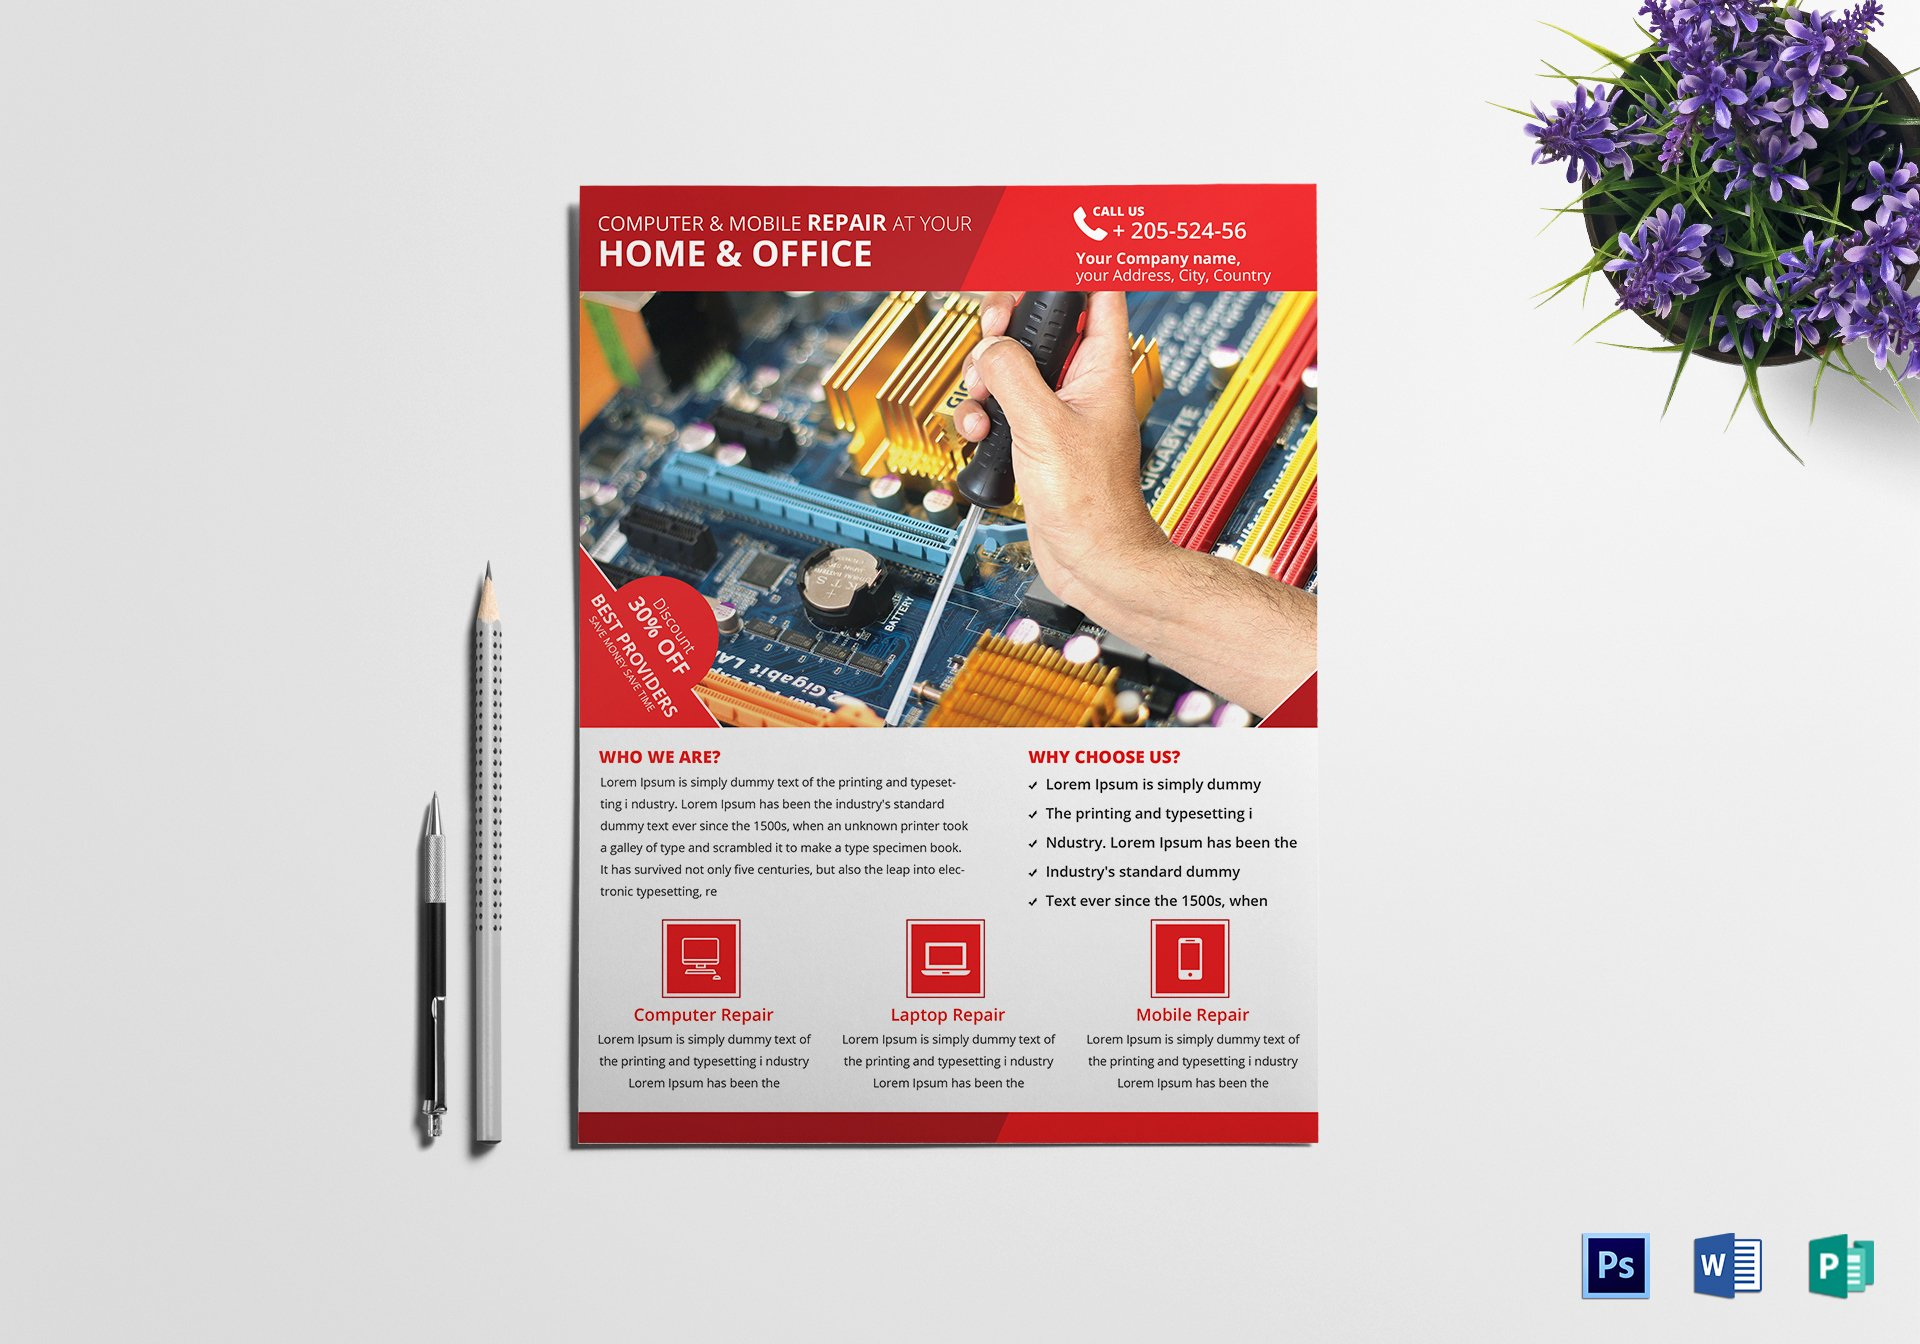 Computer Repair Flyers Templates Elegant Puter Mobile Repair Flyer Design Template In Psd Word